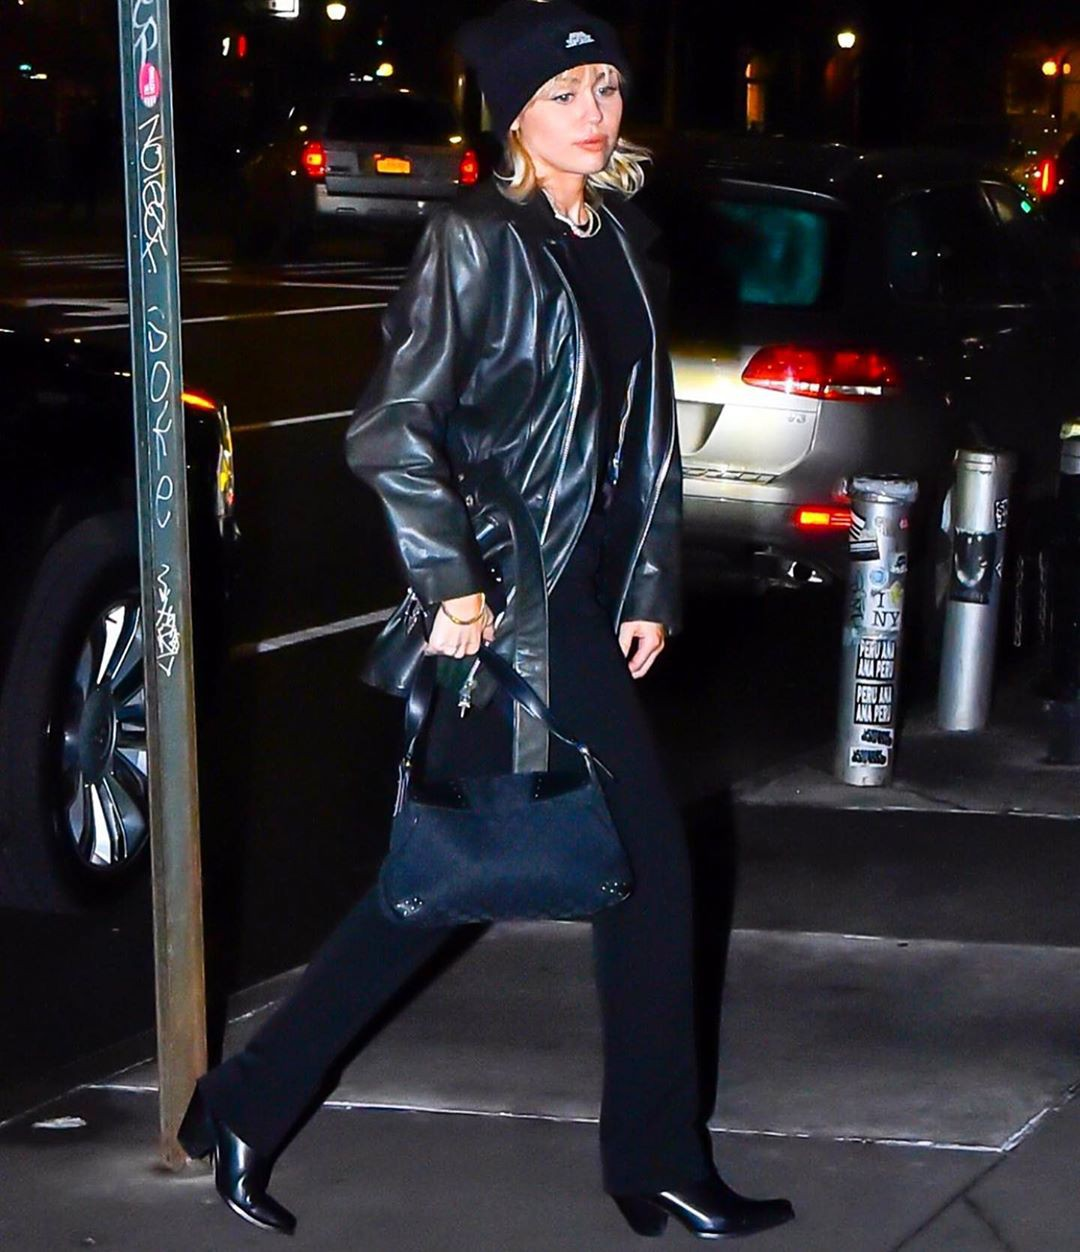 mileycyrus latex clothing, leather, tights style outfit